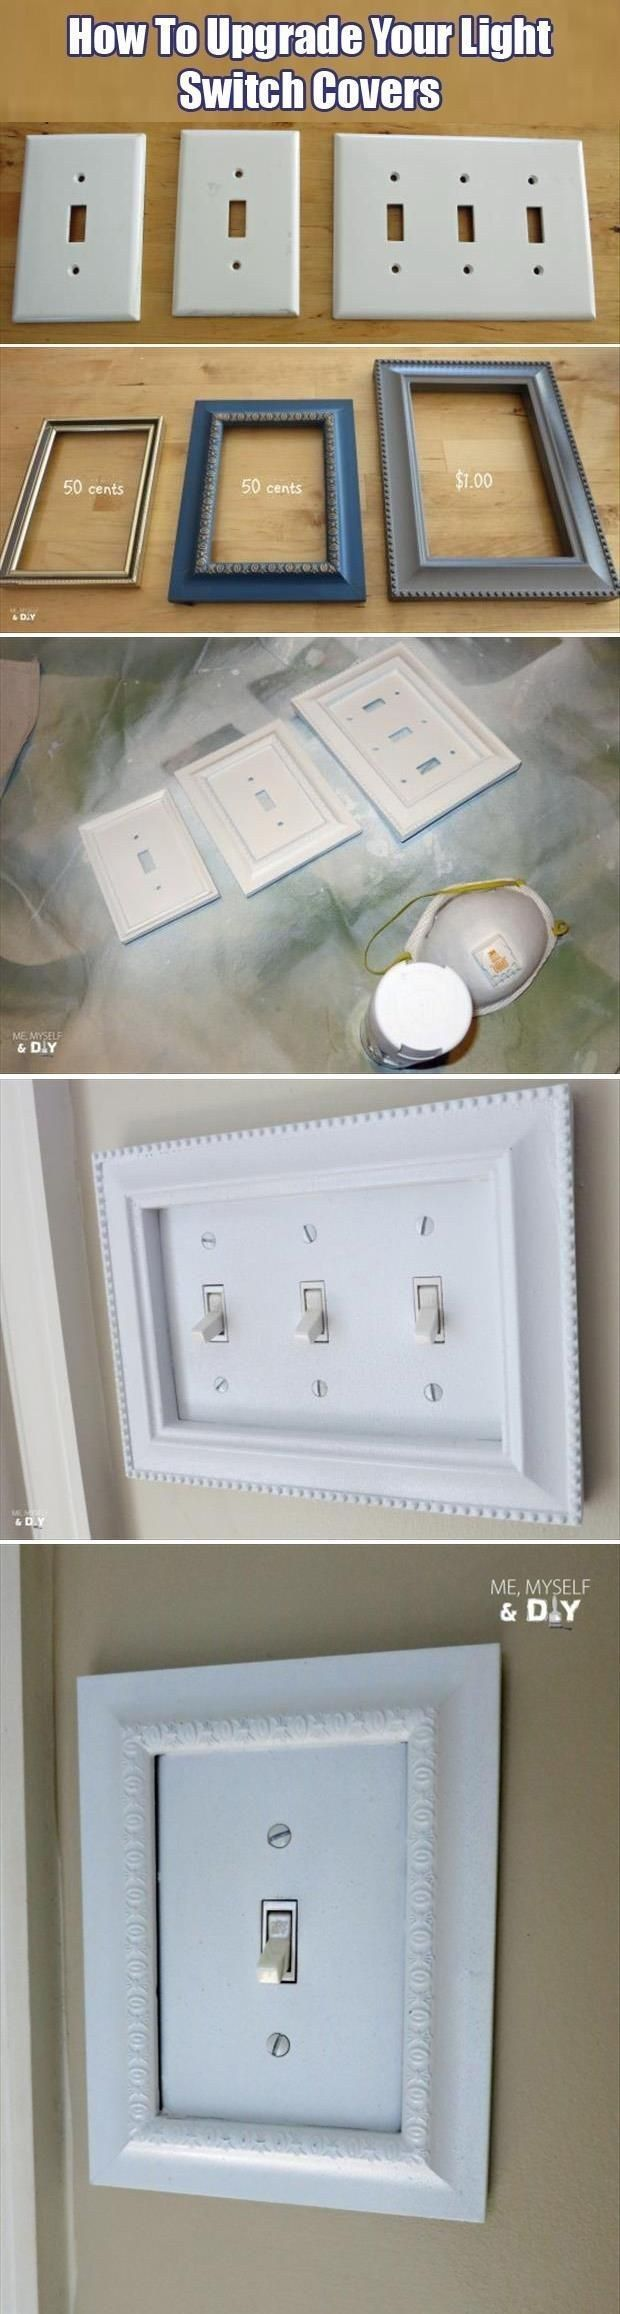 White Decorative Light Switch Covers Best 25 Light Switch Covers Ideas On Pinterest  Replace Light